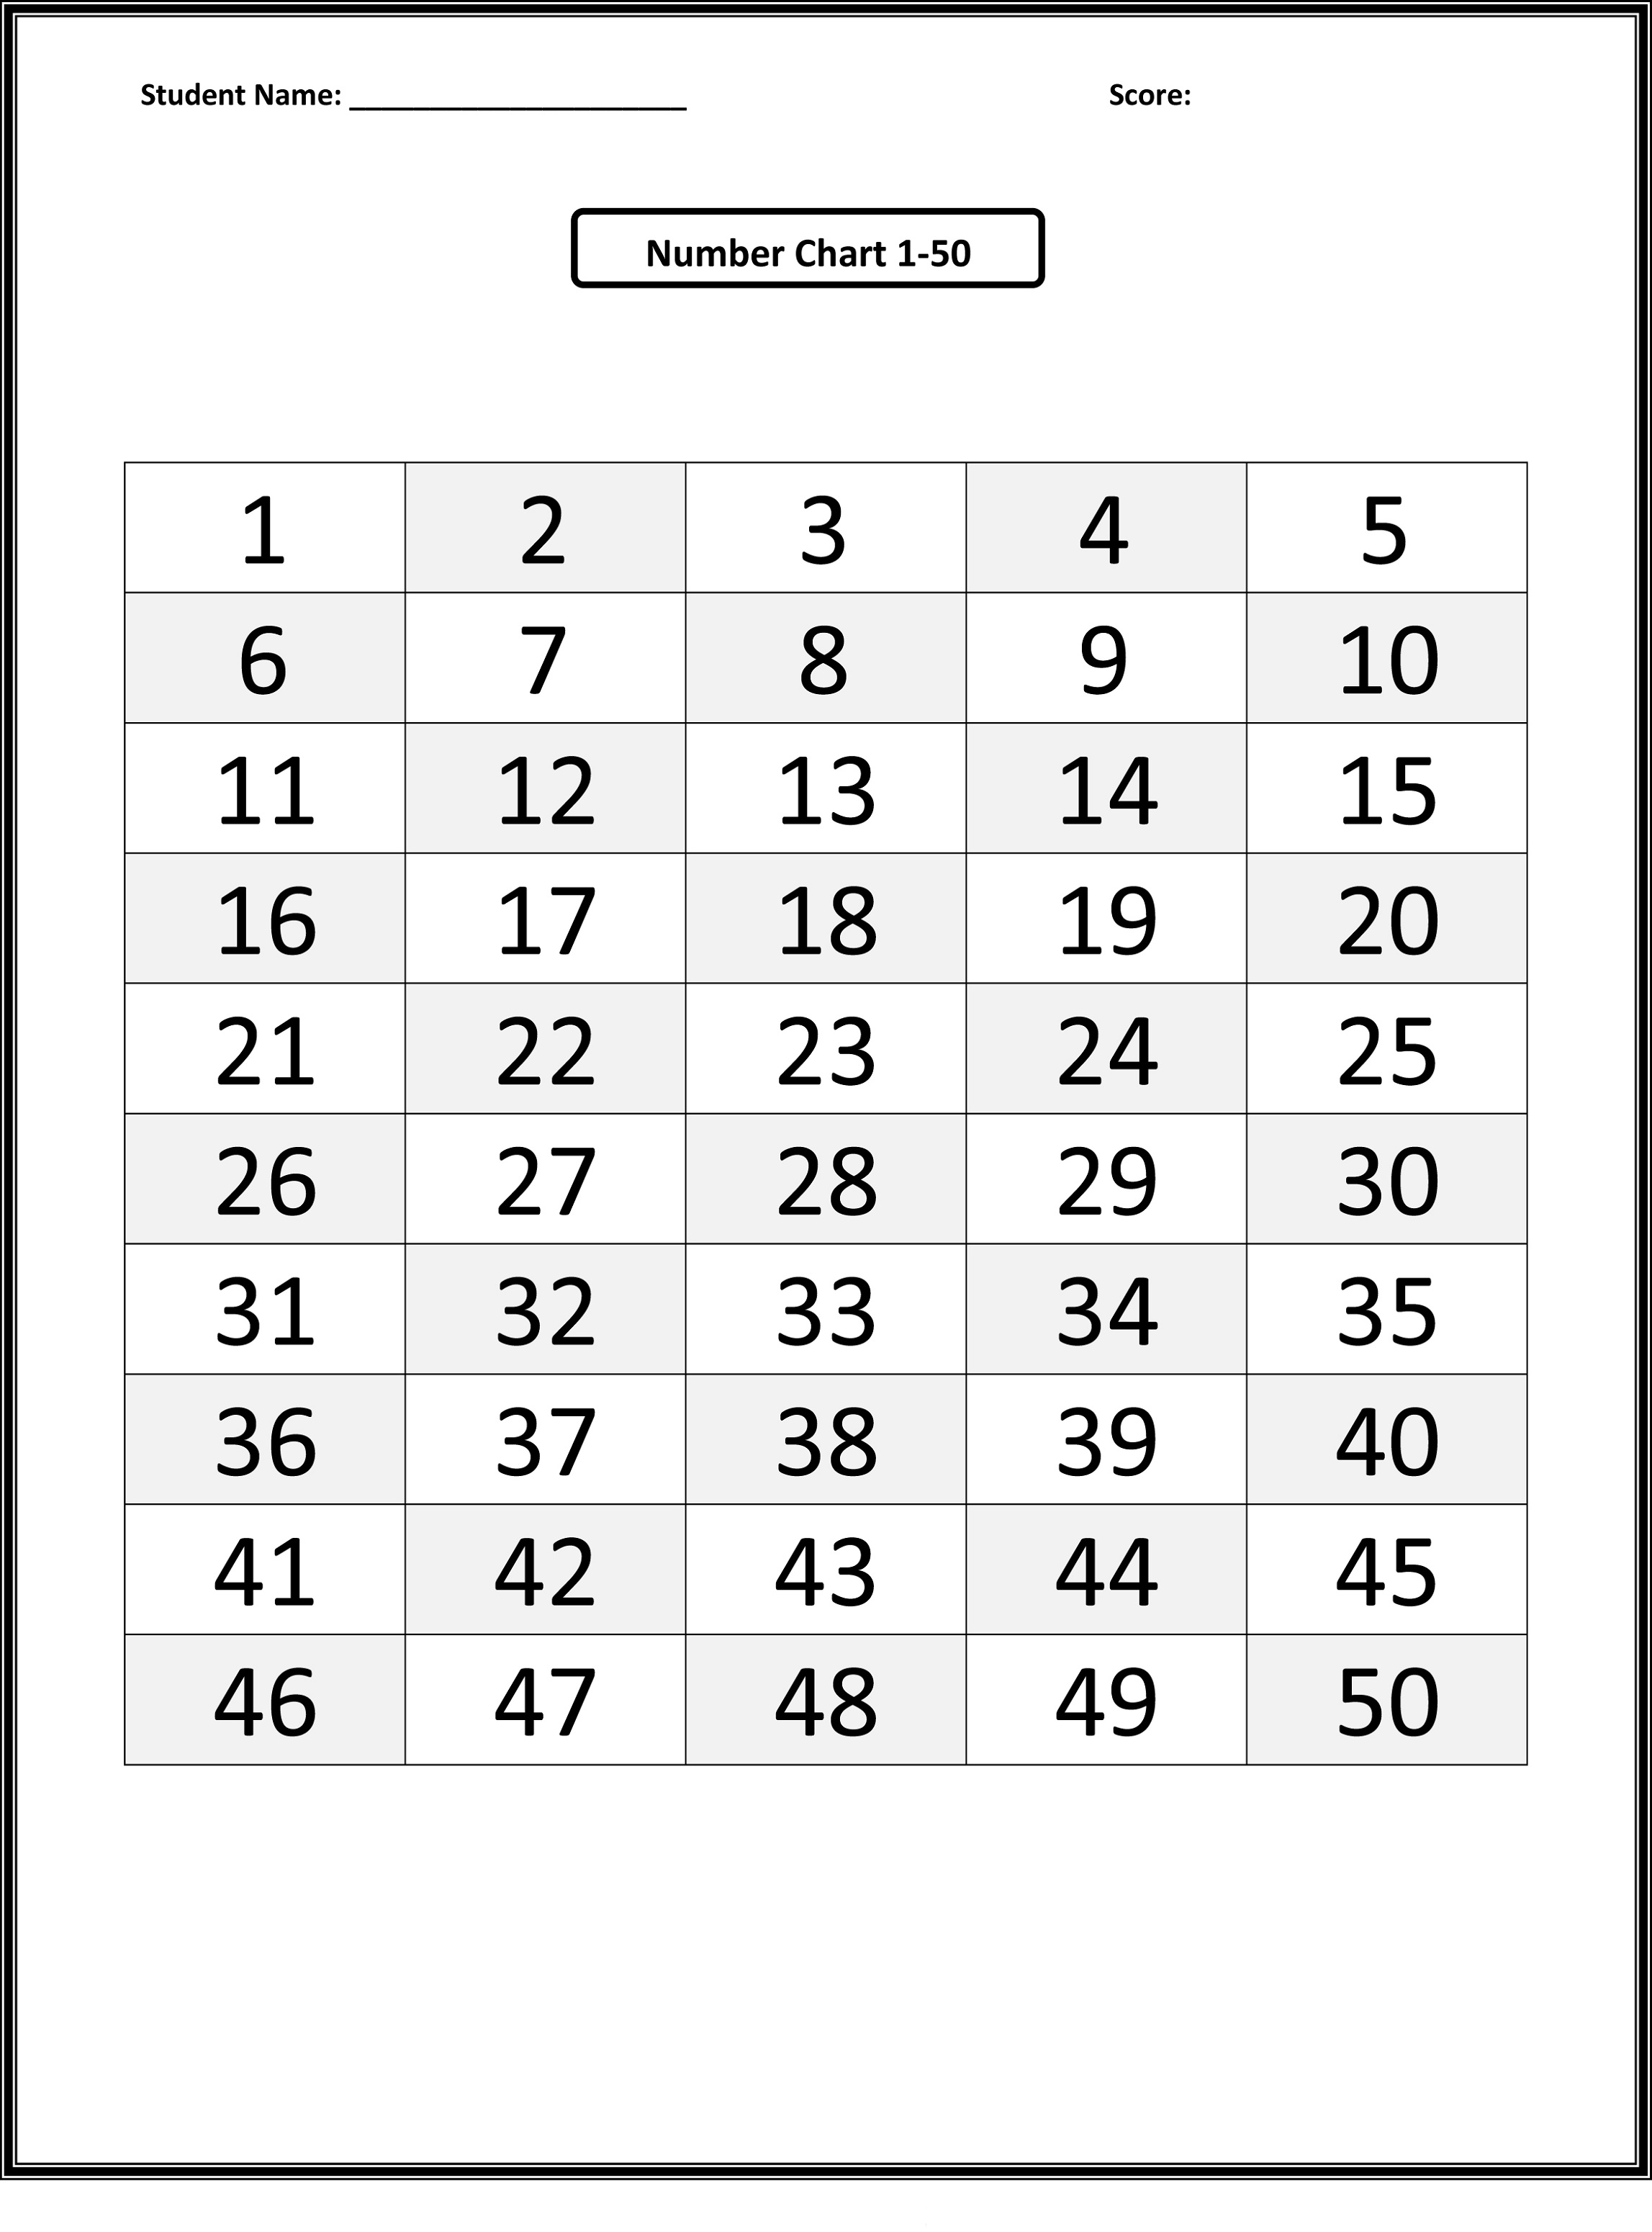 number chart 1-50 printable